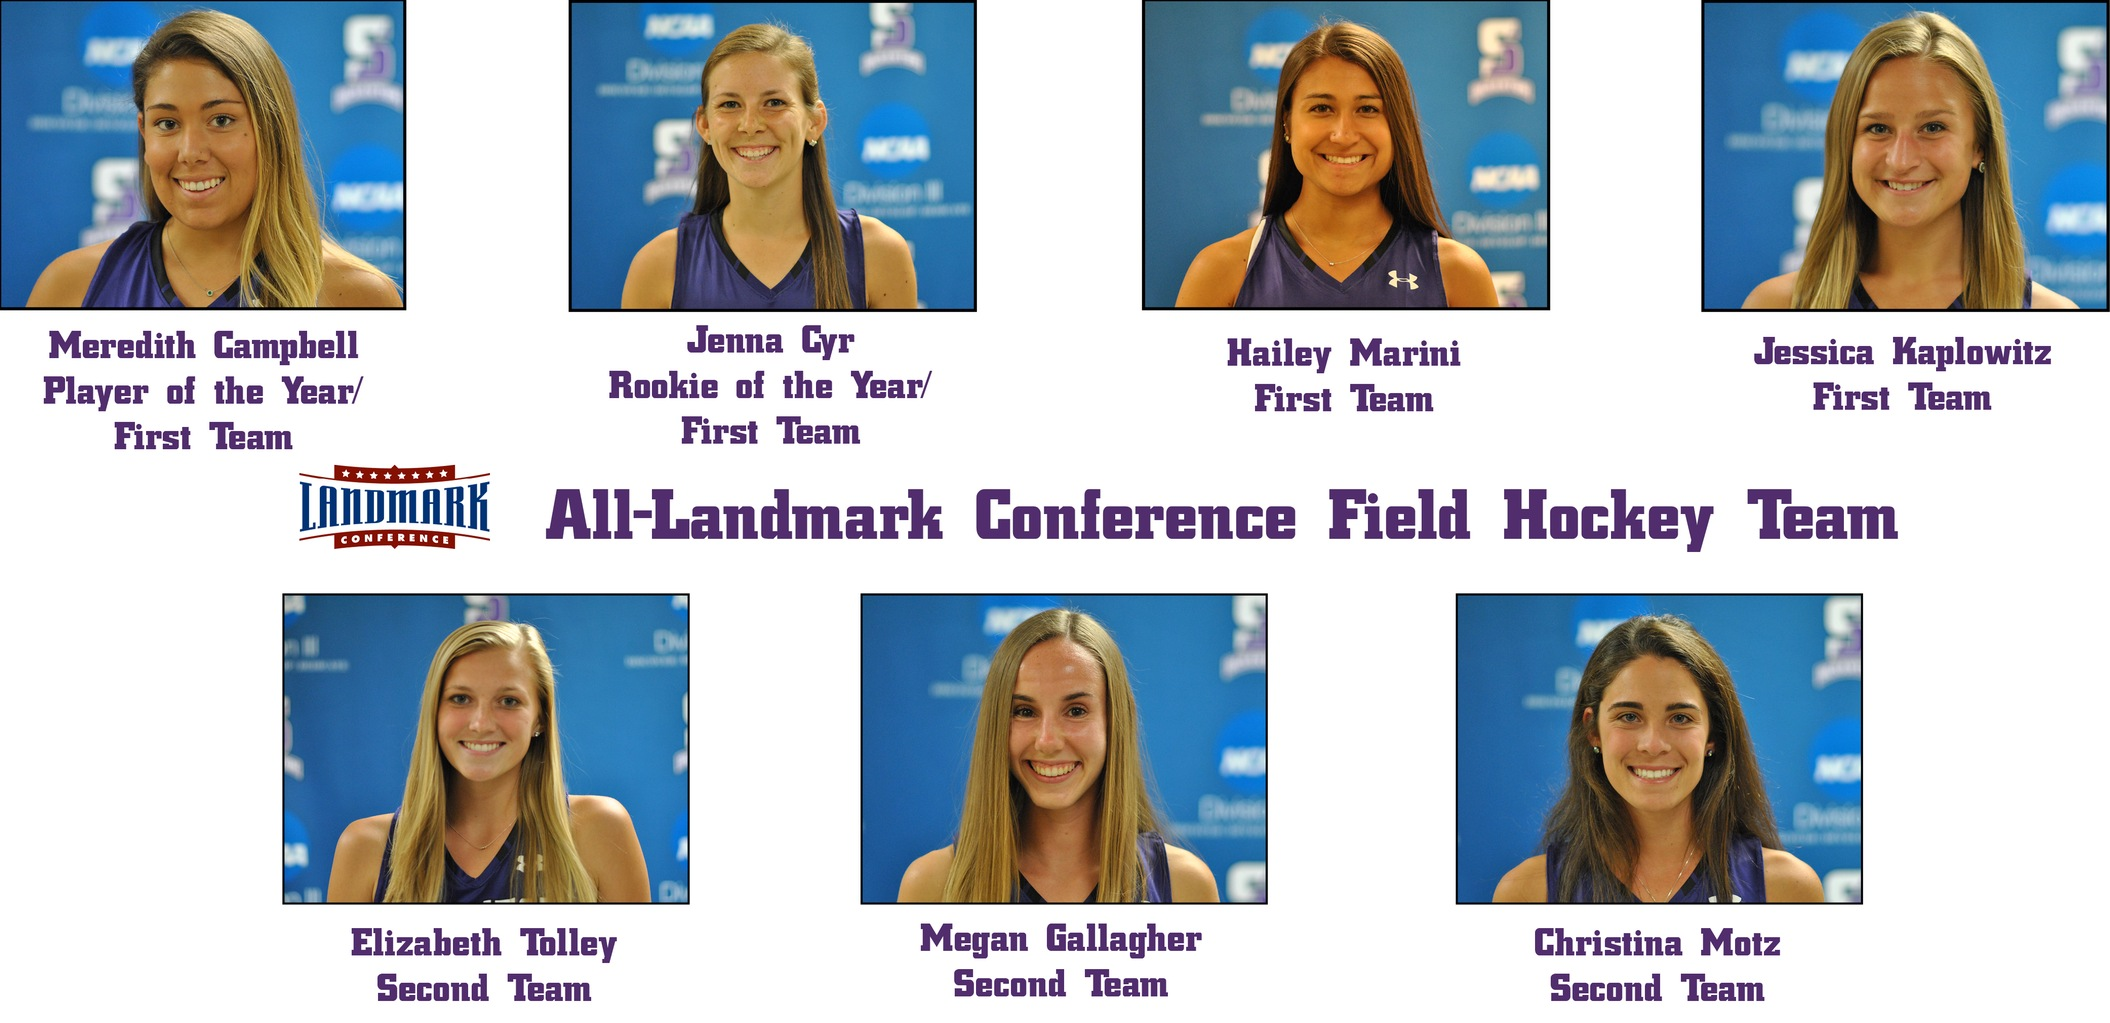 Campbell Player of the Year/Cyr Rookie of the Year, as Seven Named to All-Landmark Conference Teams for Field Hockey